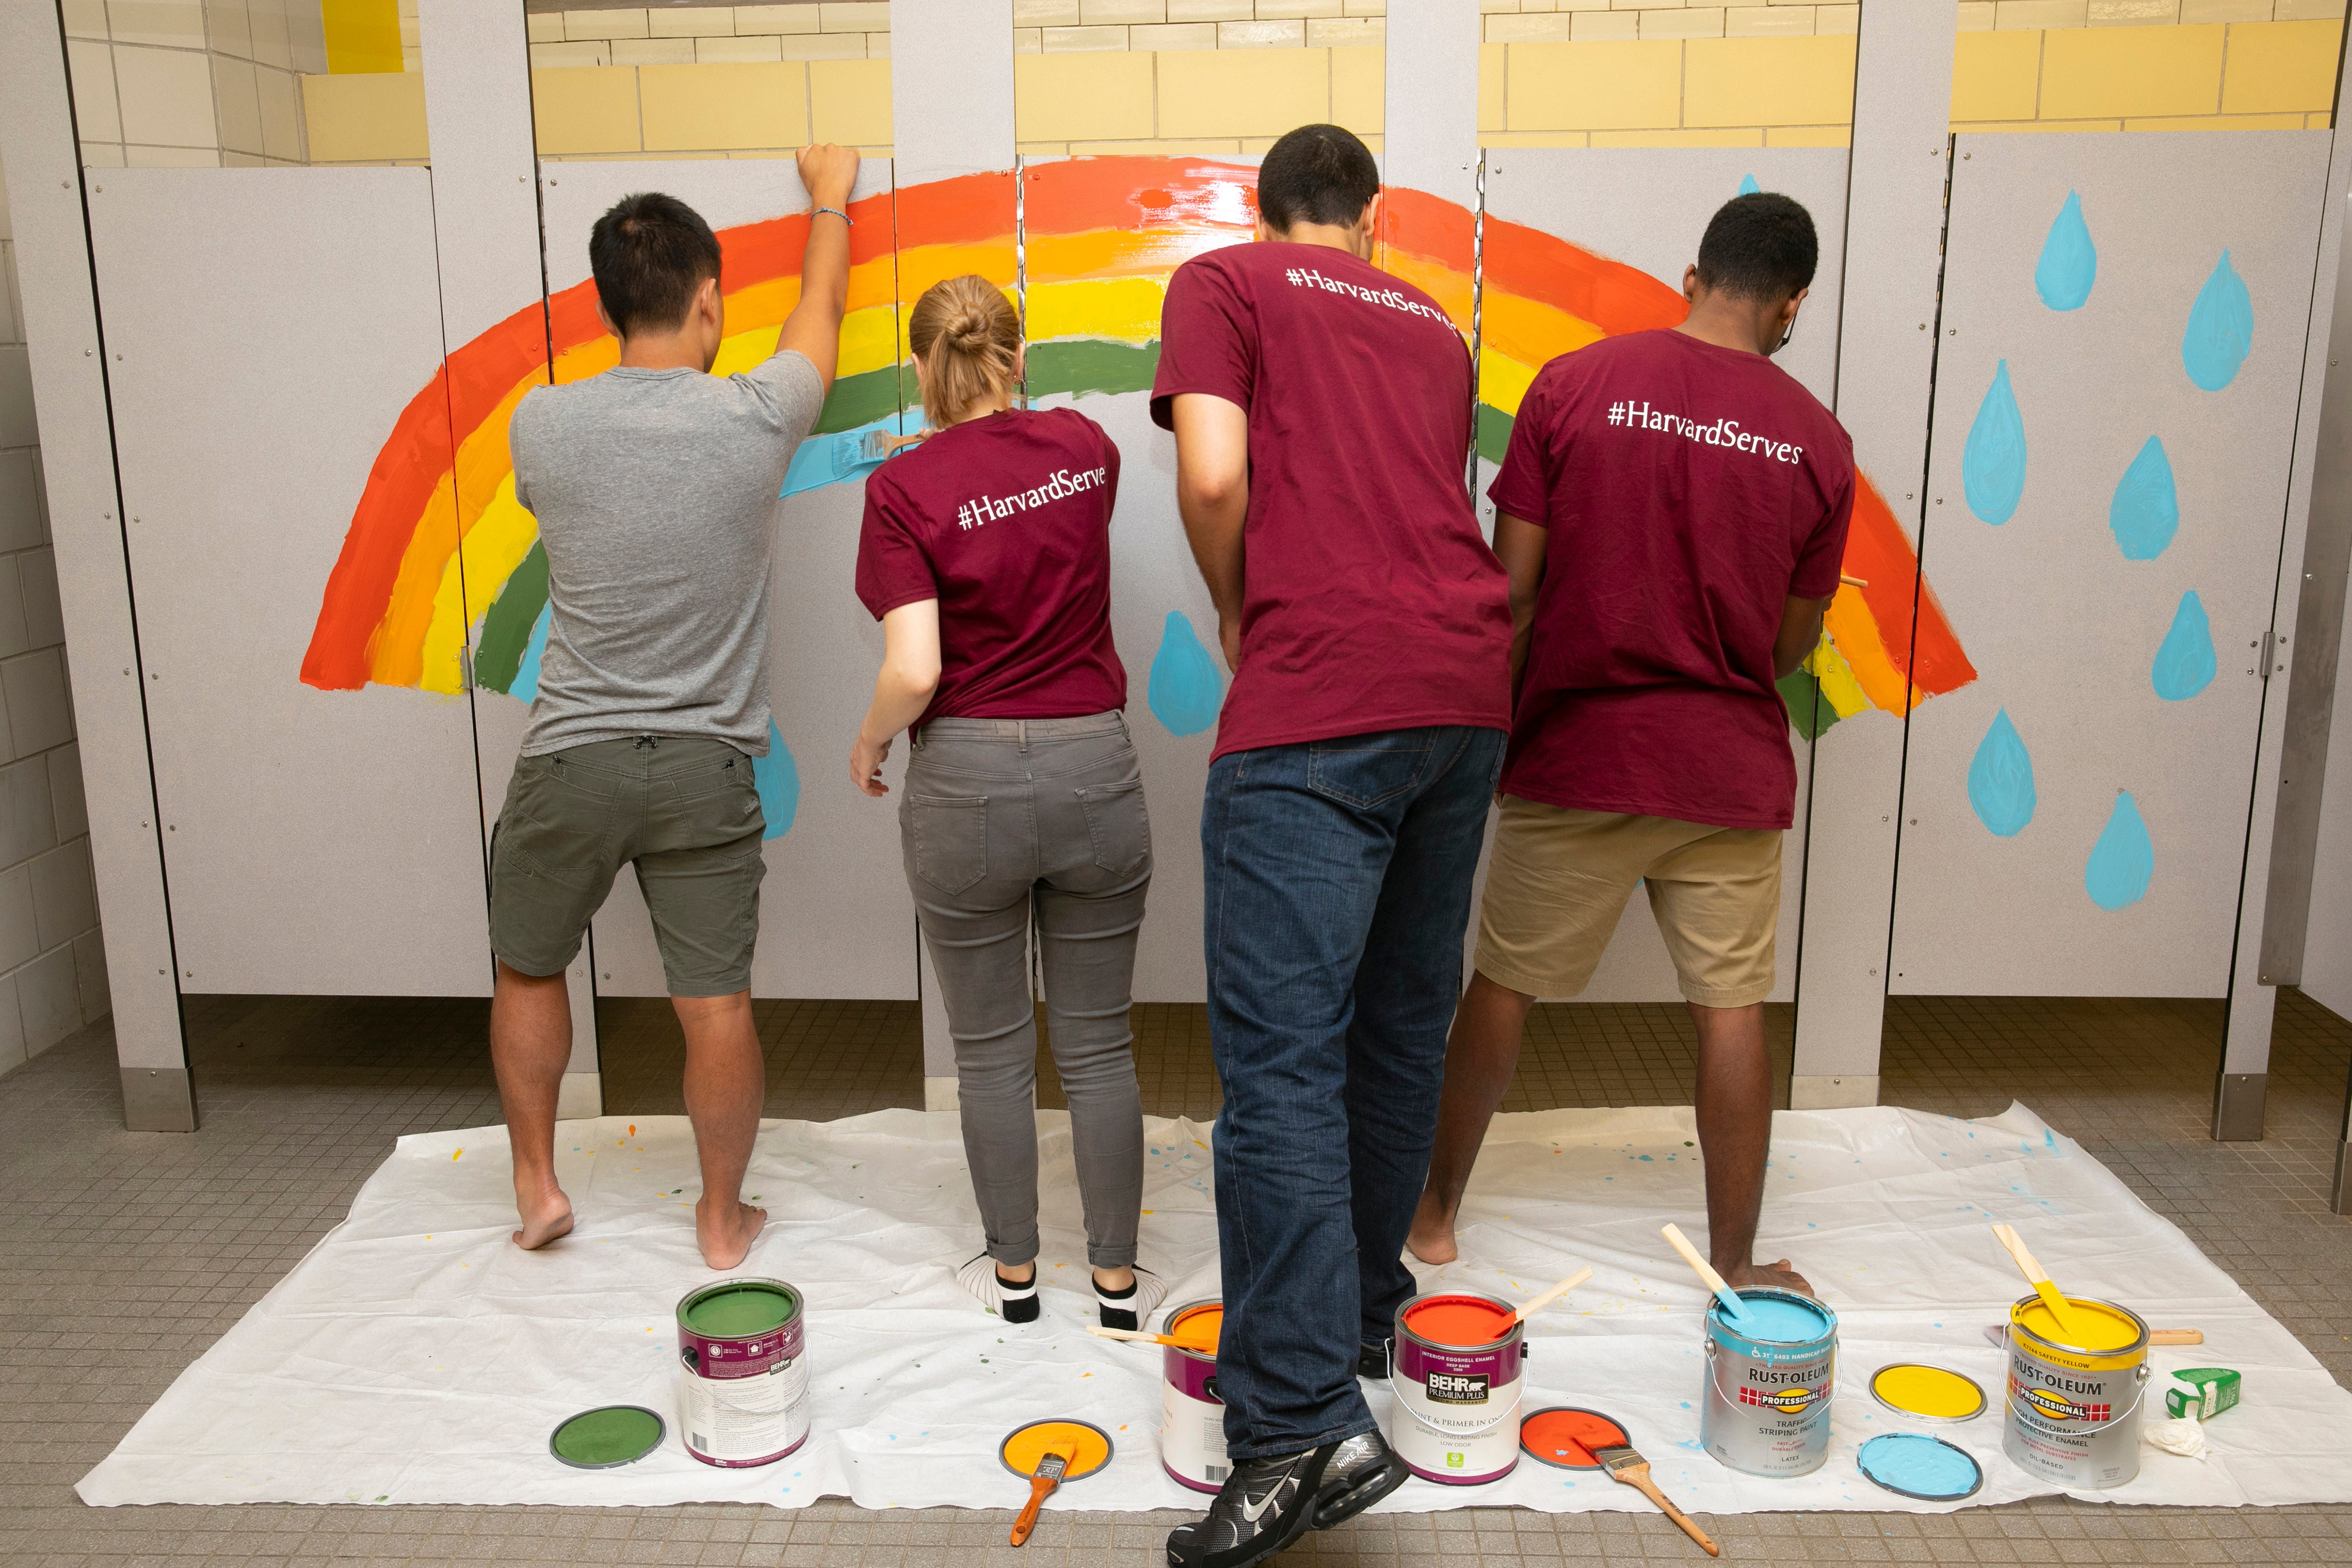 Students paint bathroom stall doors.